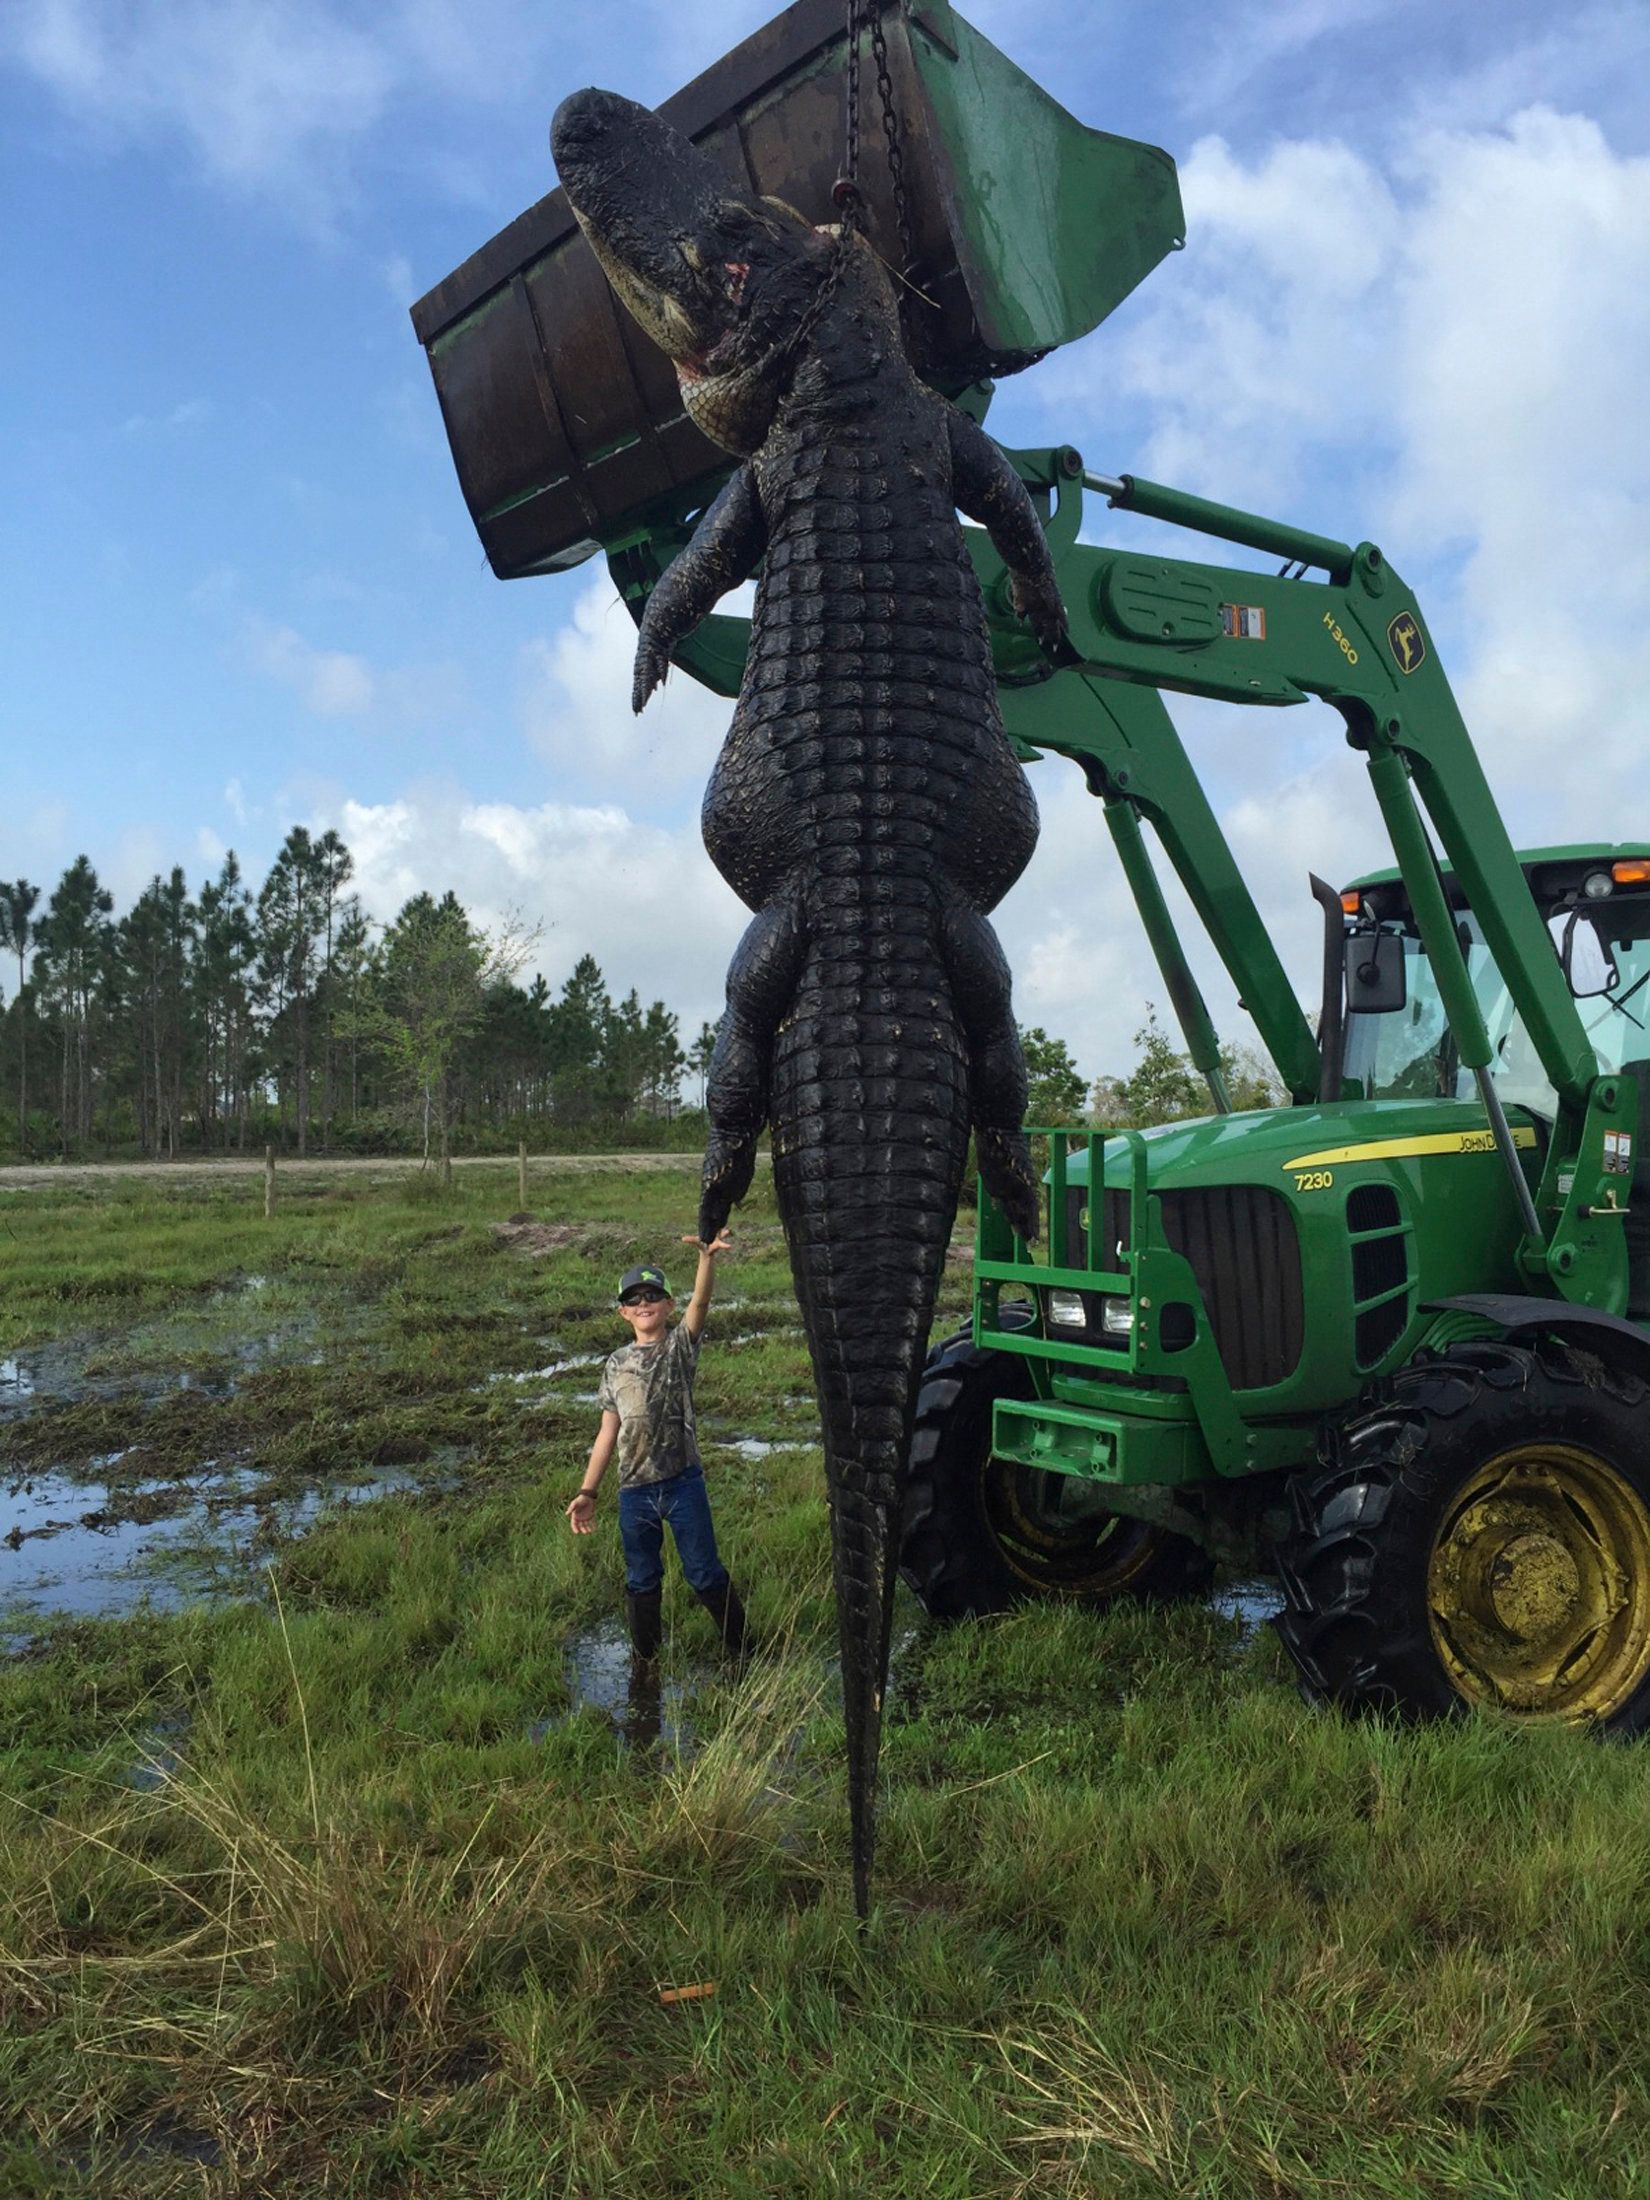 Nine-year-old Mason Lightsey is pictured with a 800-pound (363 kg) giant alligator caught at his father Lee Lightsey's farm in Venus, Florida in this April 2, 2016 handout photo released on April 6, 2016.  REUTERS/Lee Lightsey/Outwest Farms, Inc./Handout via Reuters  ATTENTION EDITORS - THIS PICTURE WAS PROVIDED BY A THIRD PARTY. REUTERS IS UNABLE TO INDEPENDENTLY VERIFY THE AUTHENTICITY, CONTENT, LOCATION OR DATE OF THIS IMAGE. EDITORIAL USE ONLY. NOT FOR SALE FOR MARKETING OR ADVERTISING CAMPAIGNS. NO RESALES. NO ARCHIVE. THIS PICTURE IS DISTRIBUTED EXACTLY AS RECEIVED BY REUTERS, AS A SERVICE TO CLIENTS      TPX IMAGES OF THE DAY